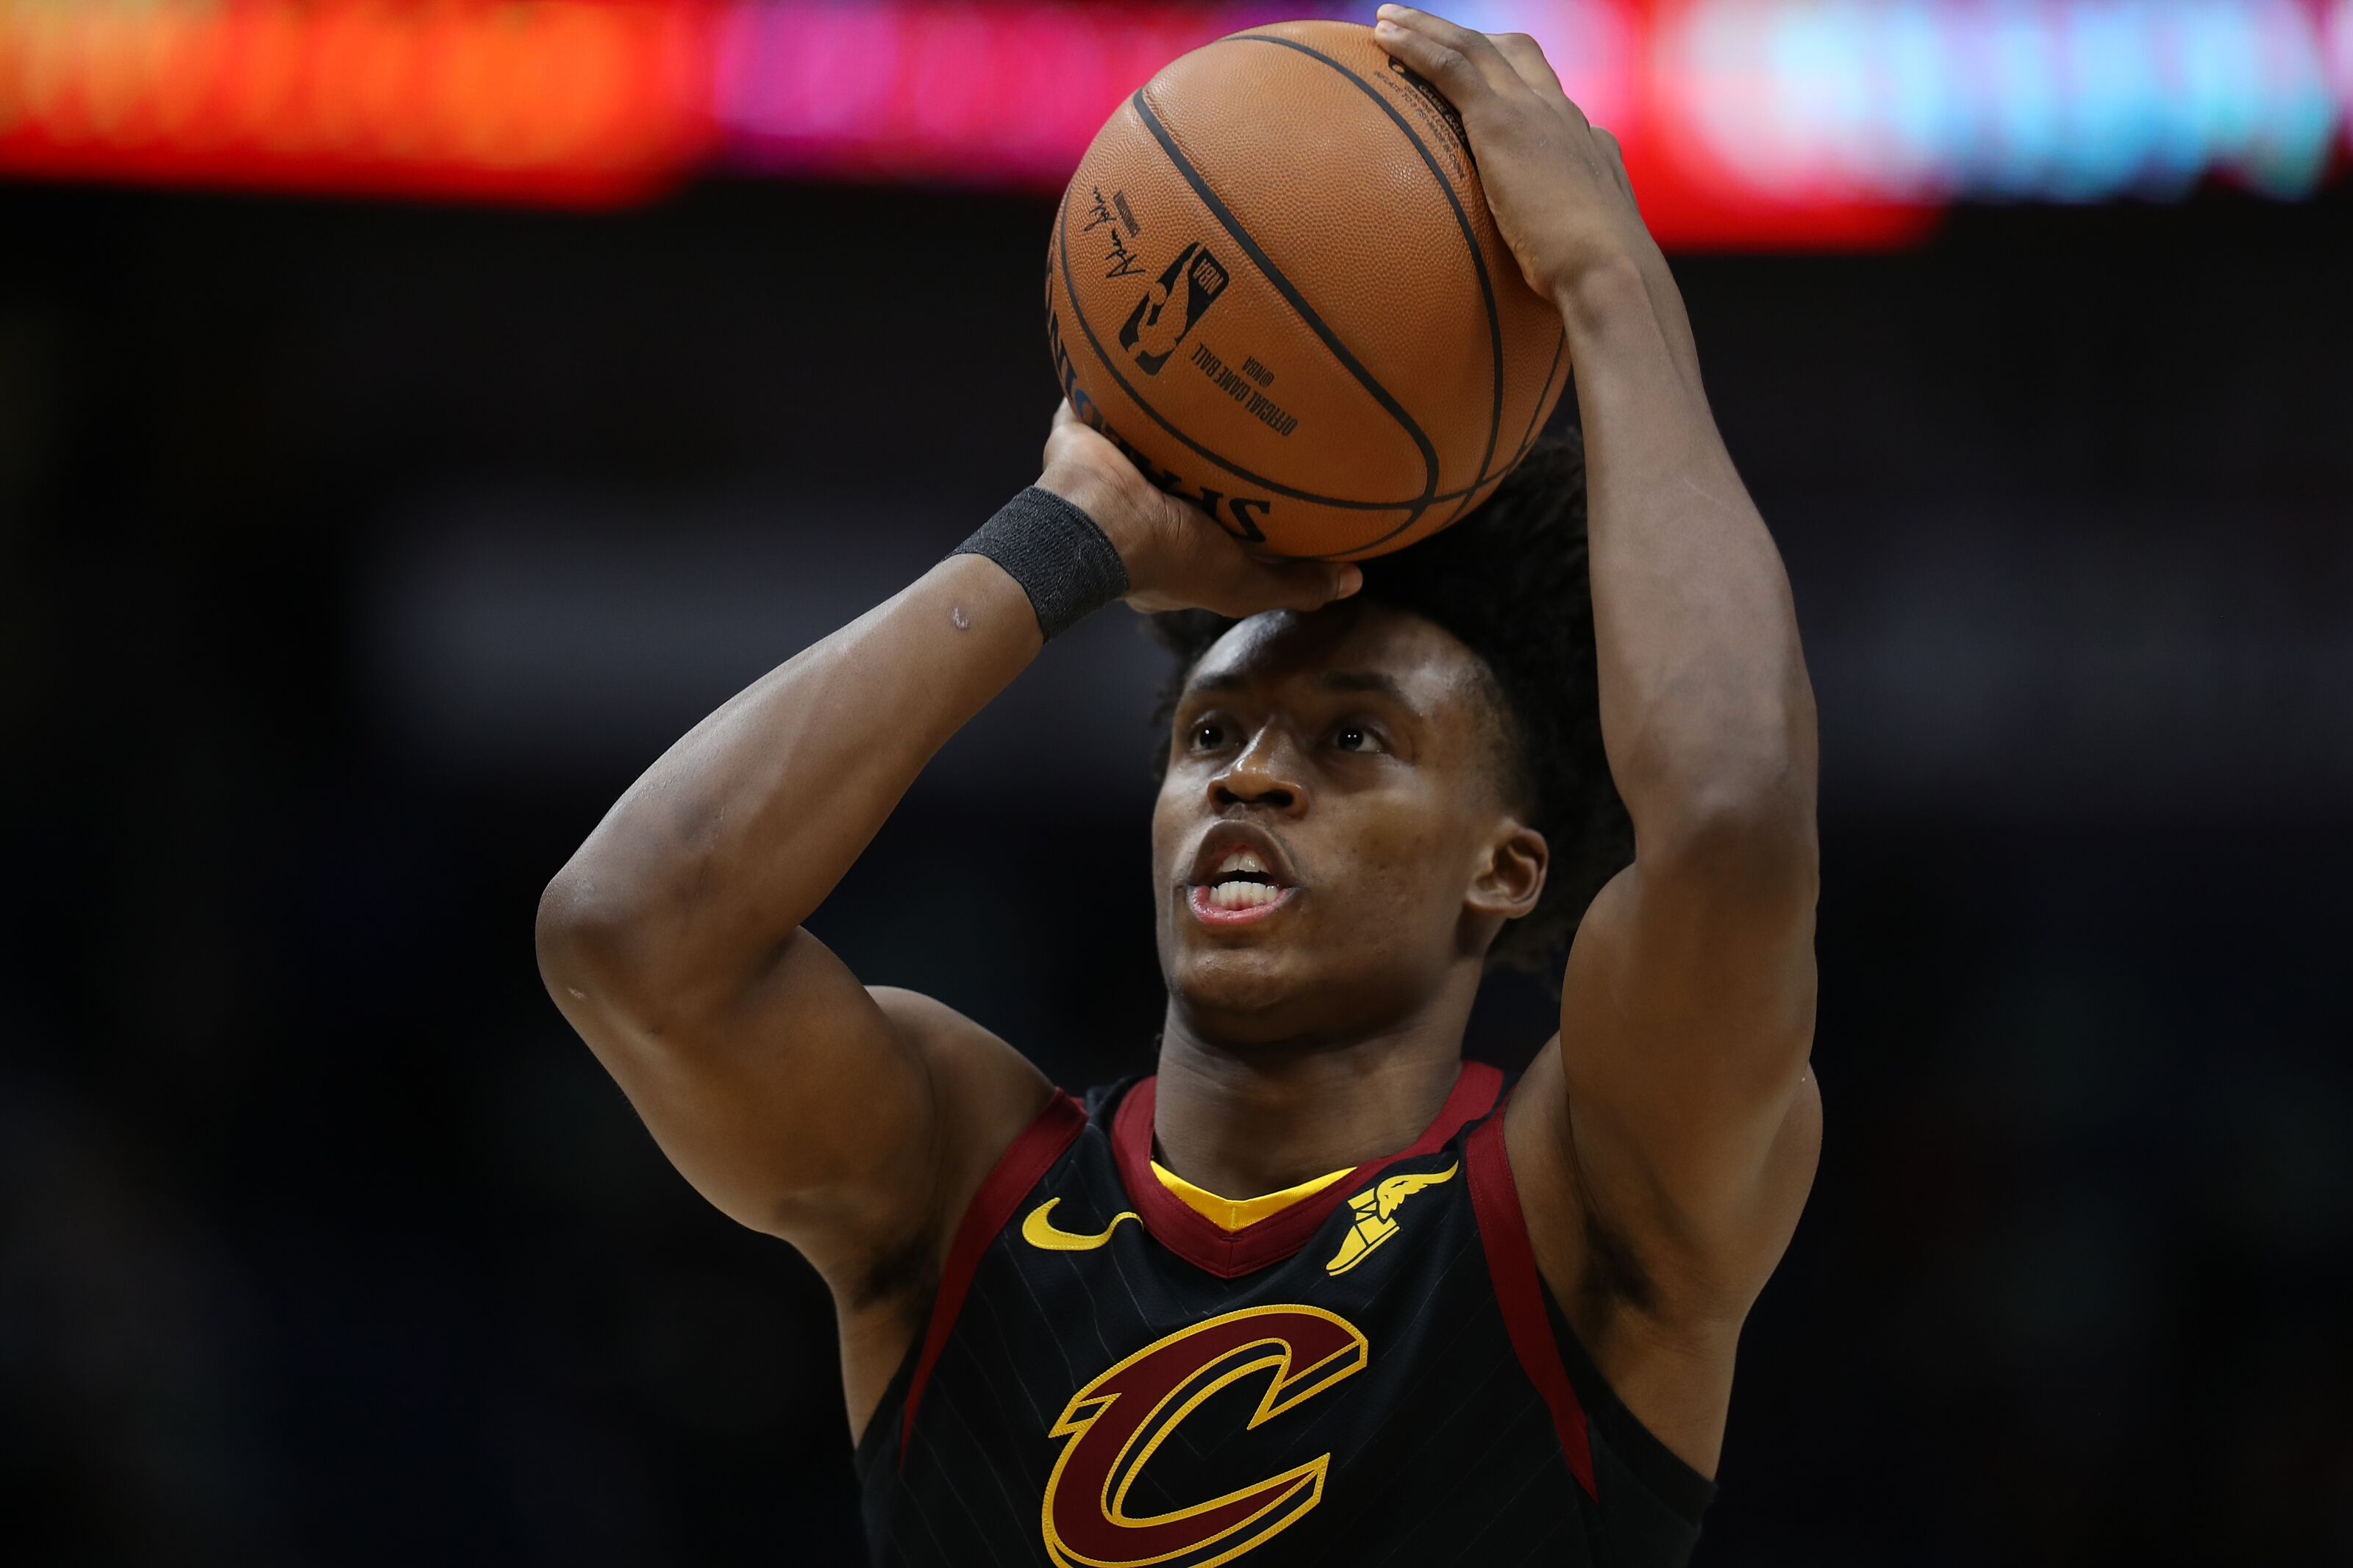 Cavs: It's cool that Dan Gilbert is a huge Collin Sexton supporter